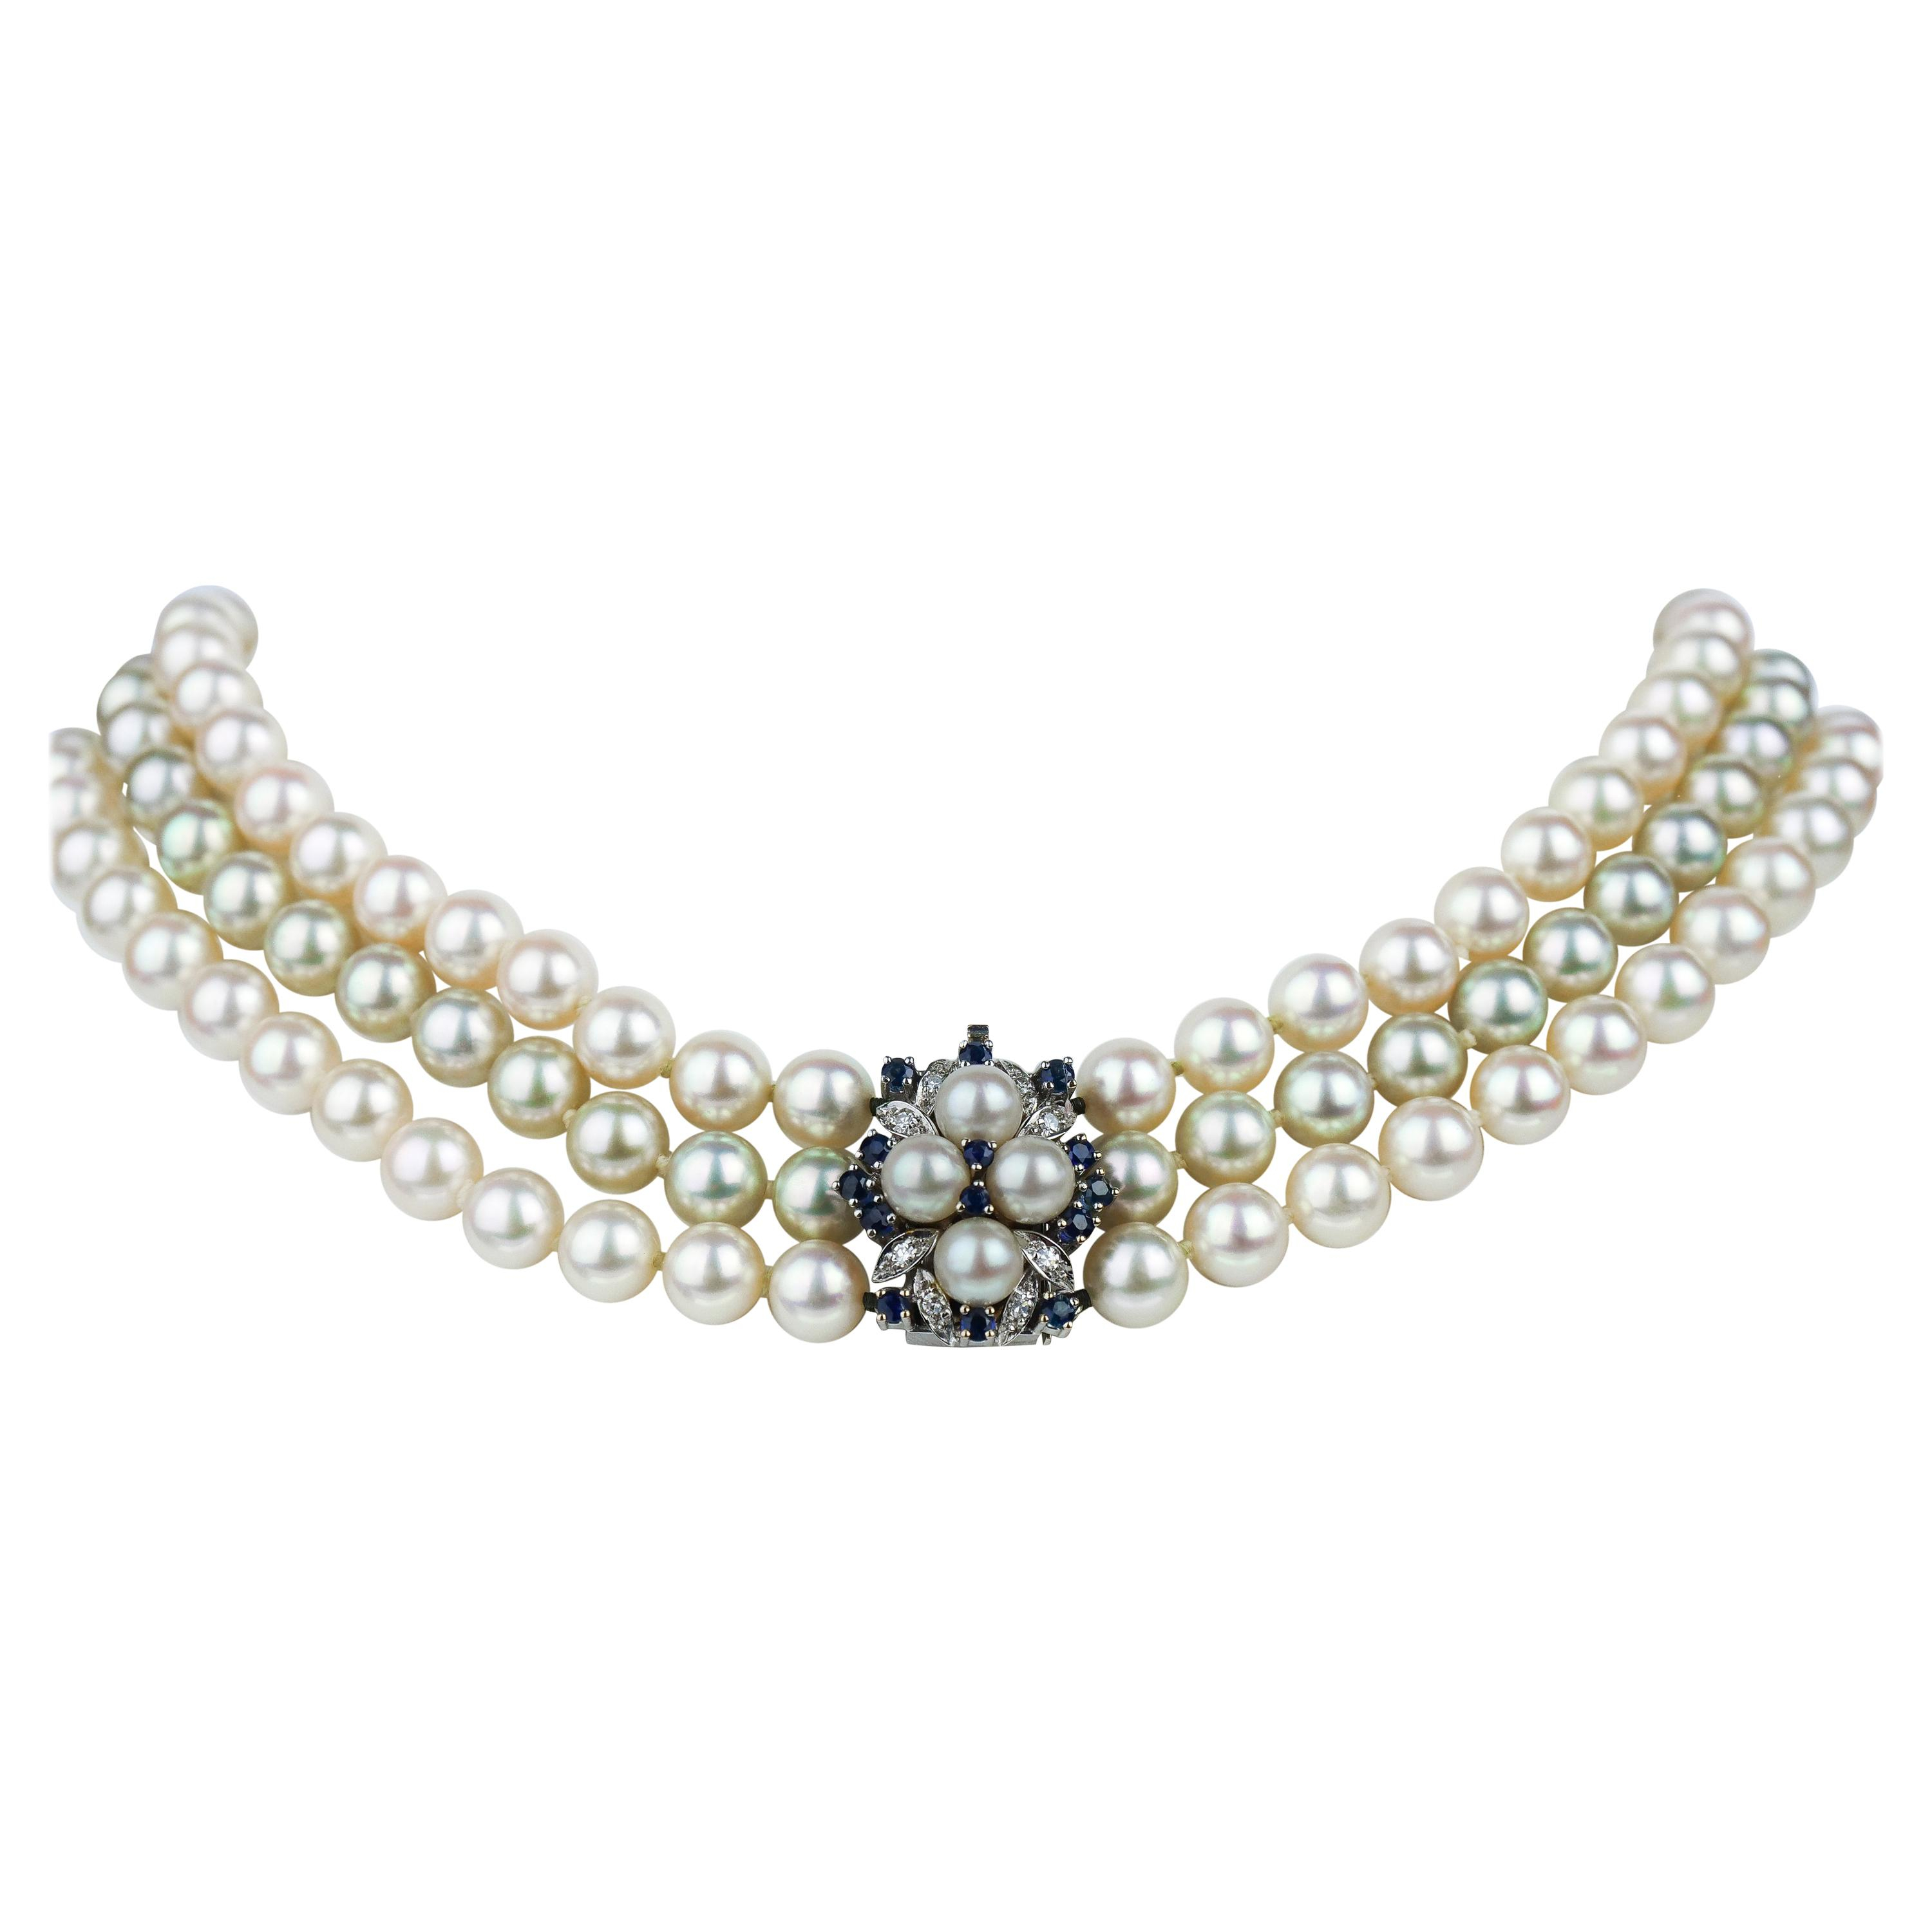 Antique Pearl Necklaces – 2,874 For Sale At 1stdibs Regarding Most Recently Released String Of Beads Y Necklaces (View 17 of 25)